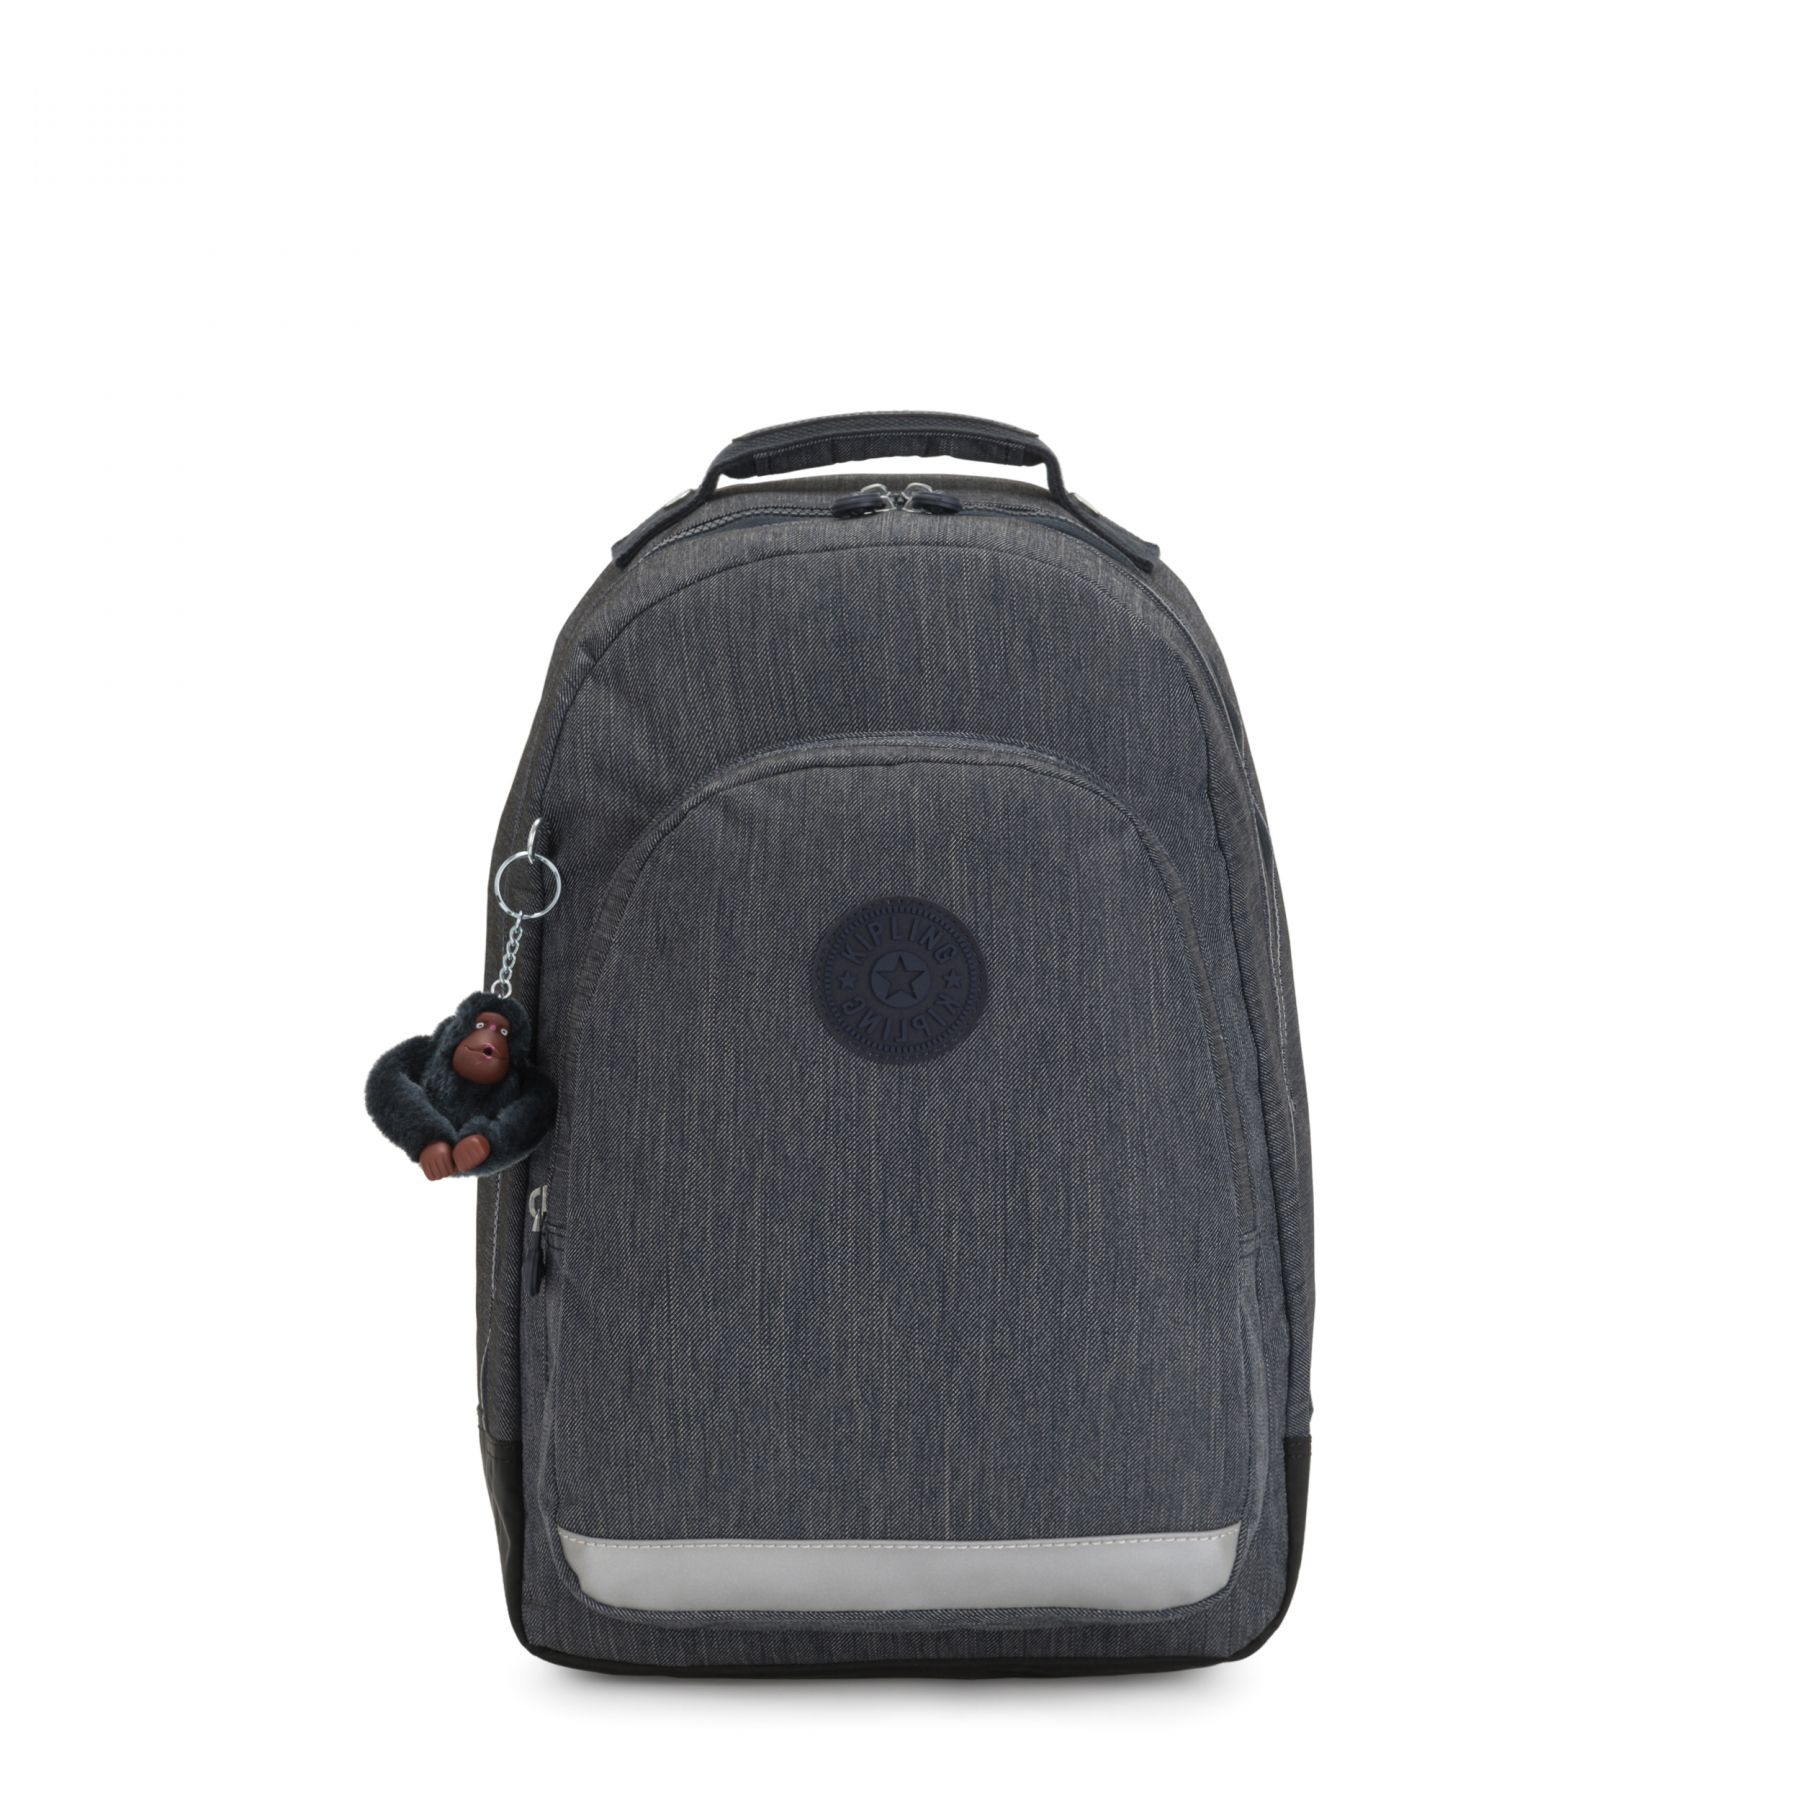 CLASS ROOM Latest Backpacks by Kipling - Front view